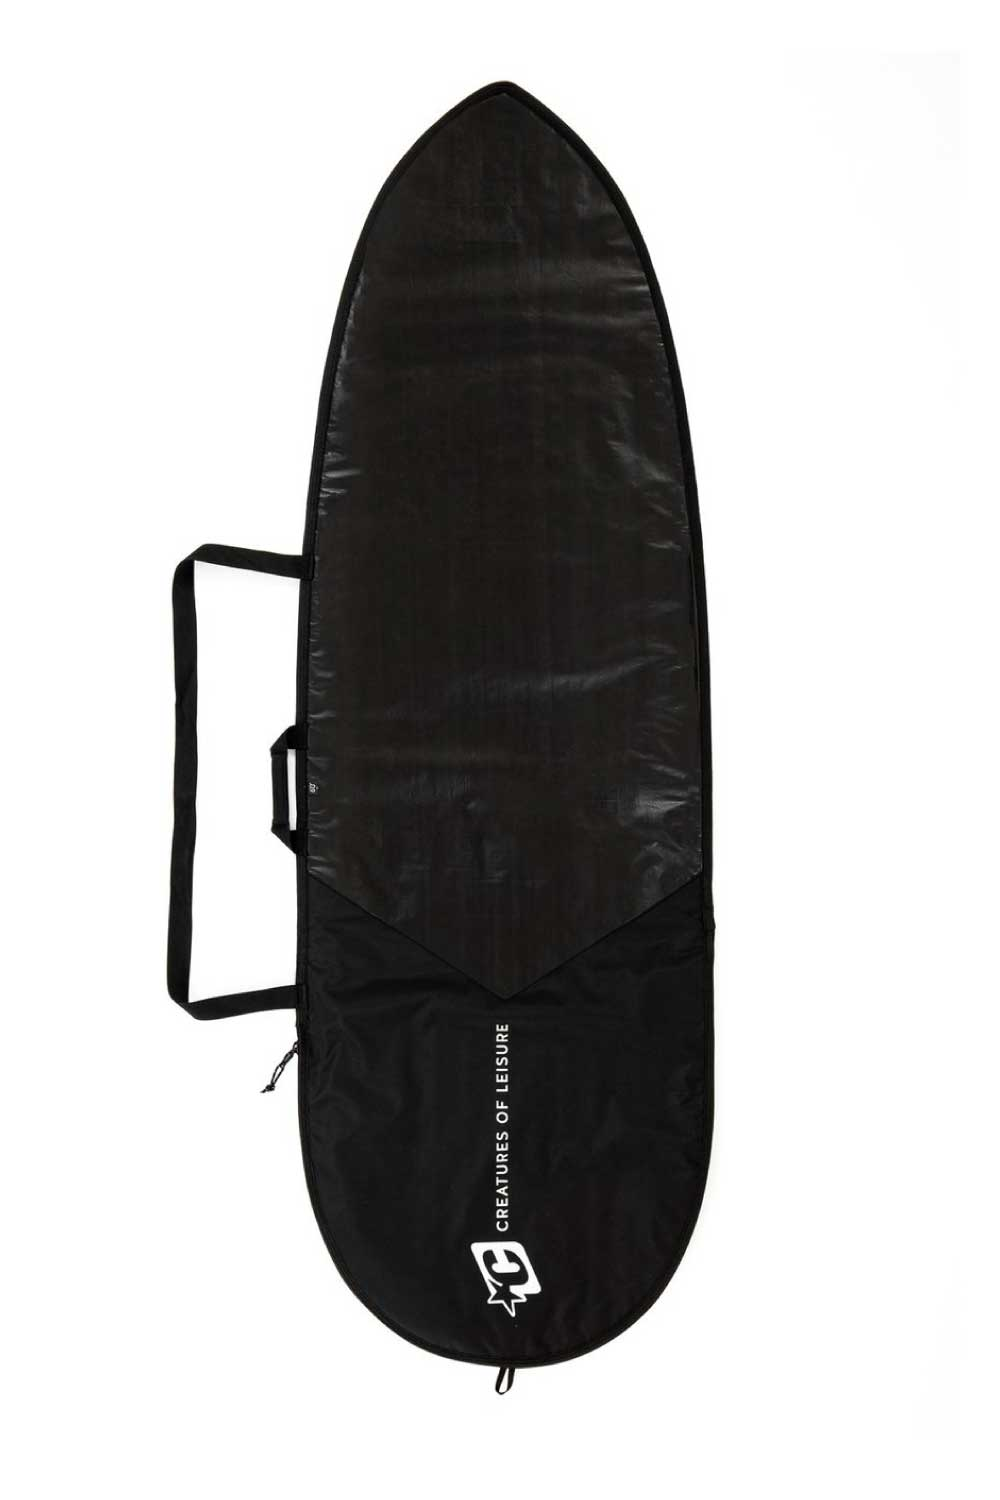 Creatures of Leisure Fish ICON Lite Board Bag